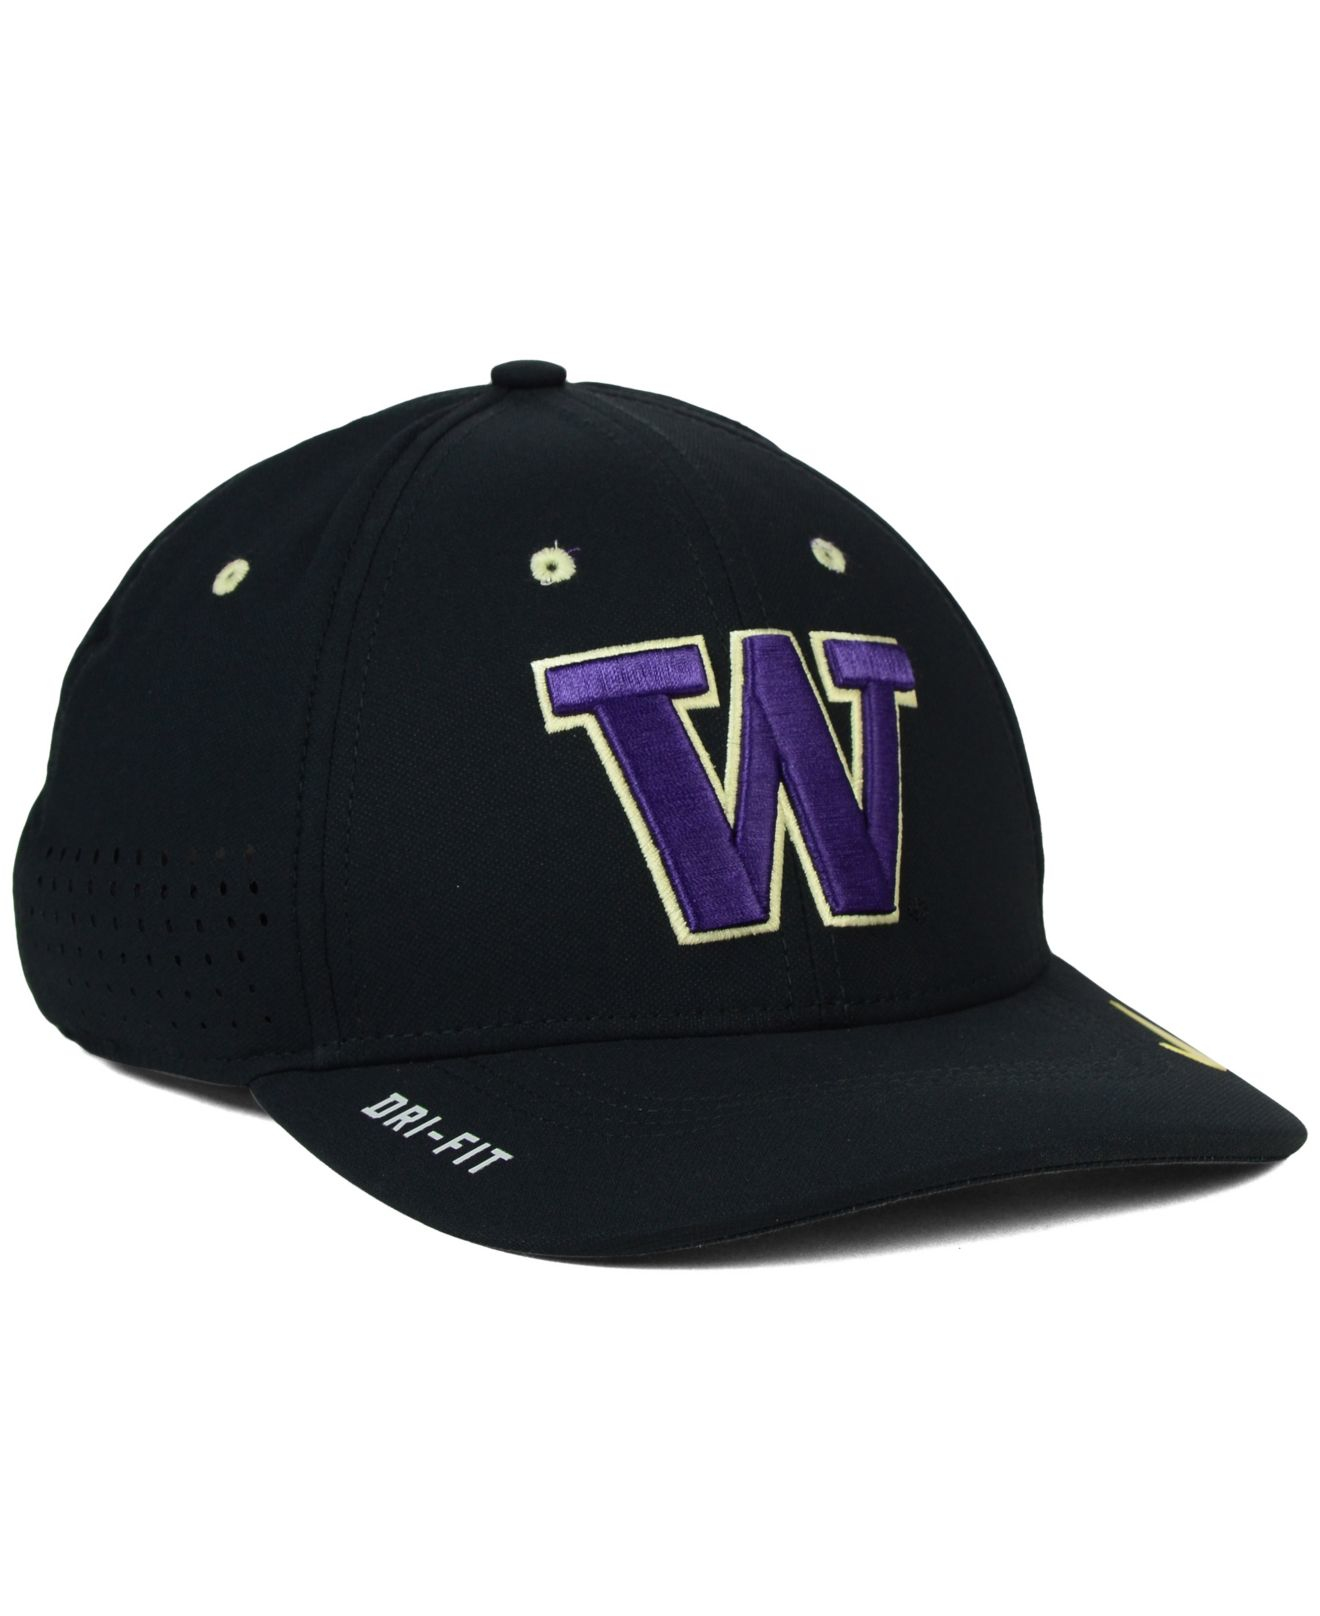 timeless design 07853 9f106 ... italy lyst nike washington huskies sideline cap in black for men 7cd93  96959